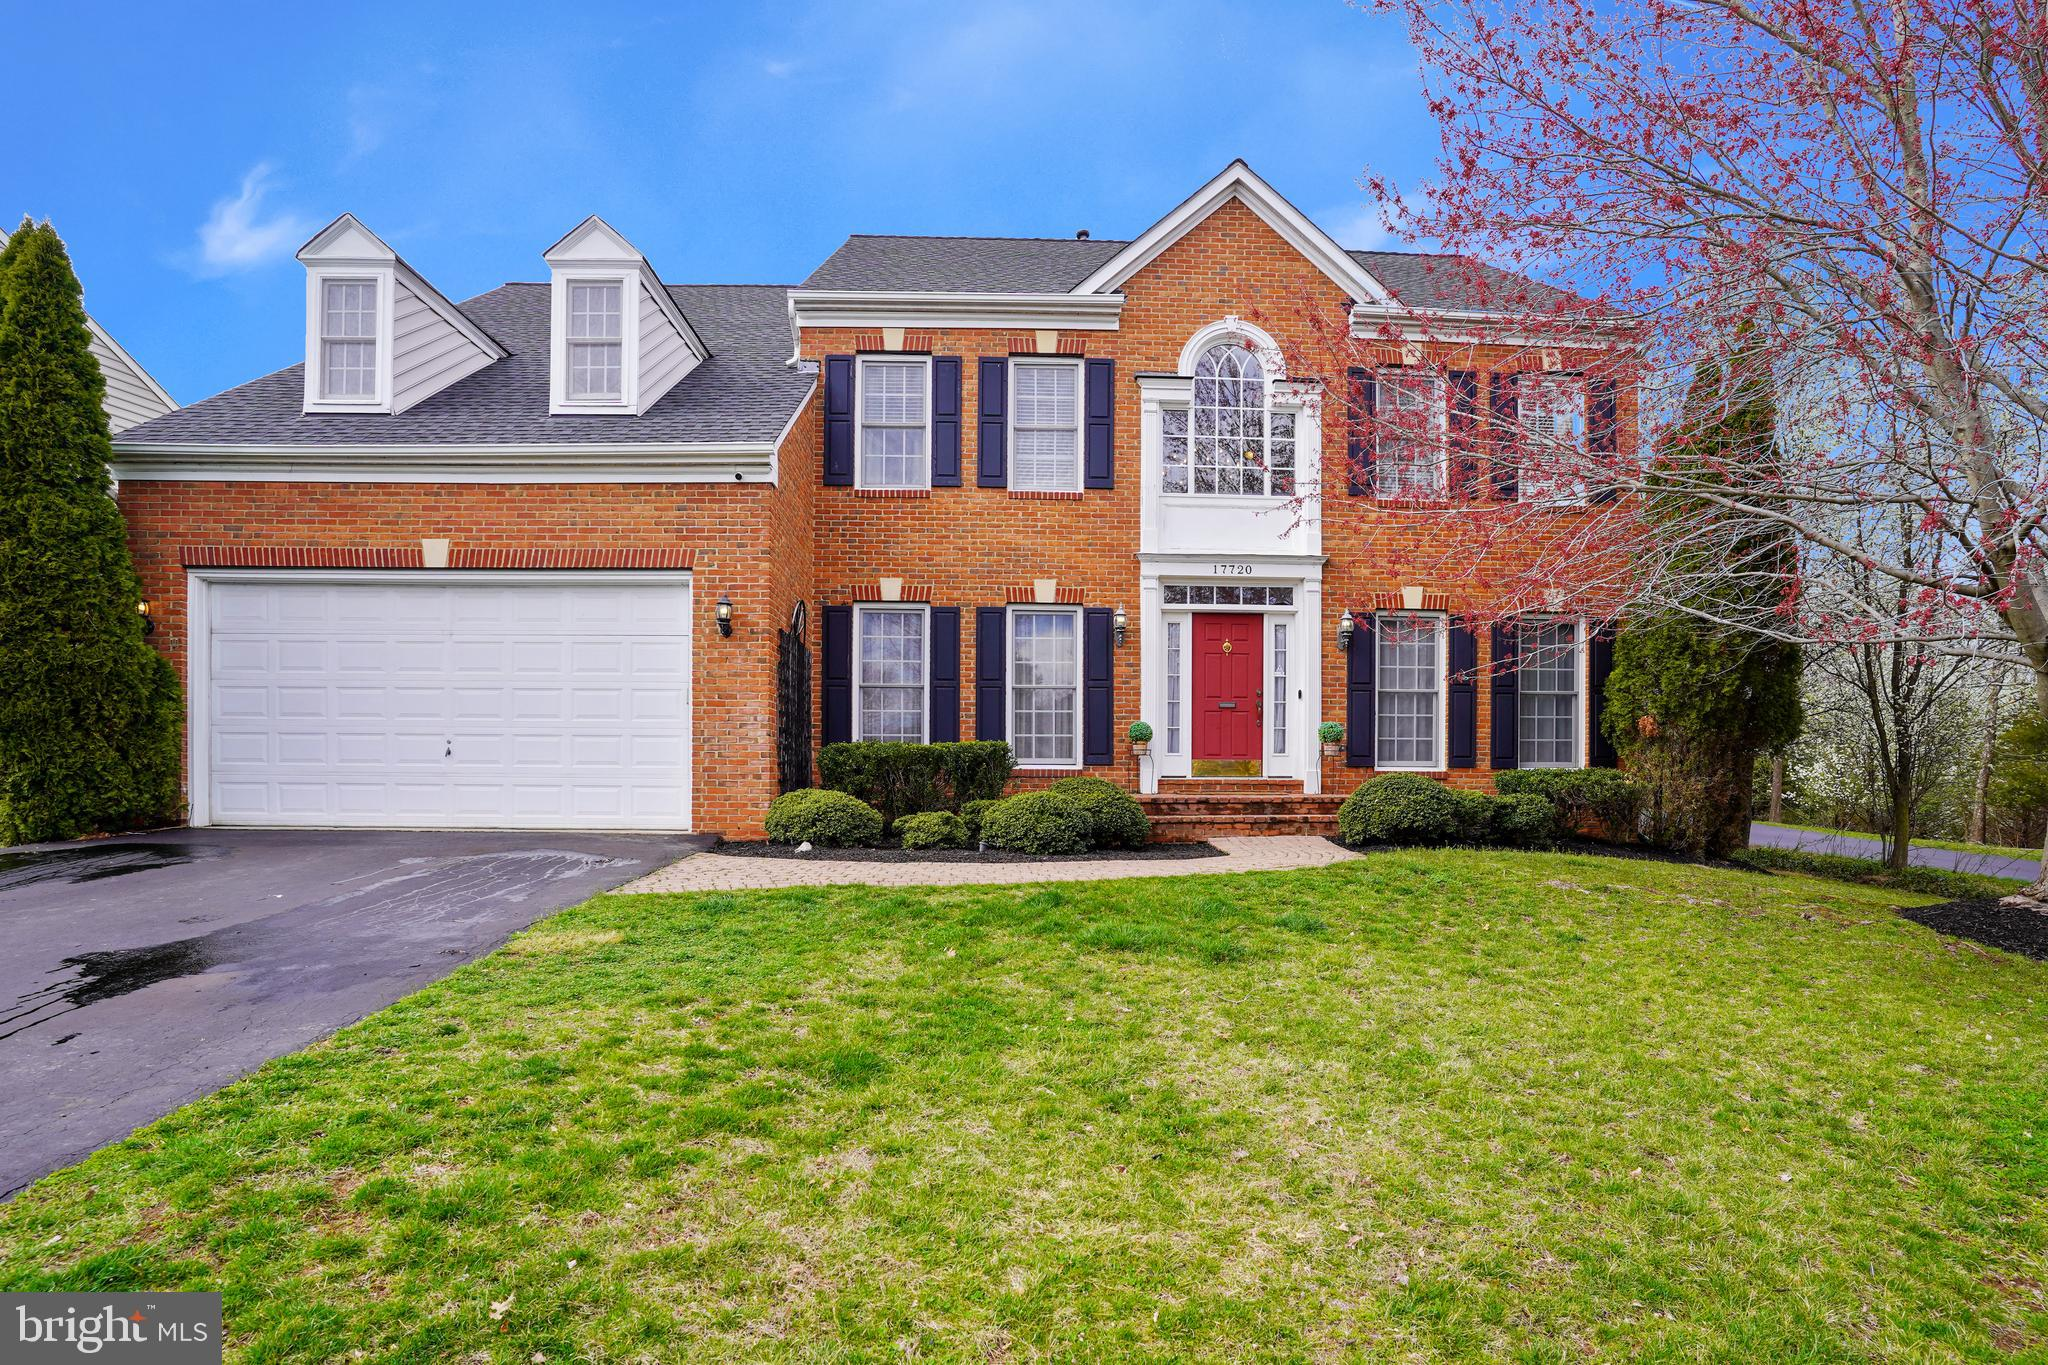 17720 Cricket Hill Drive, Germantown, MD 20874